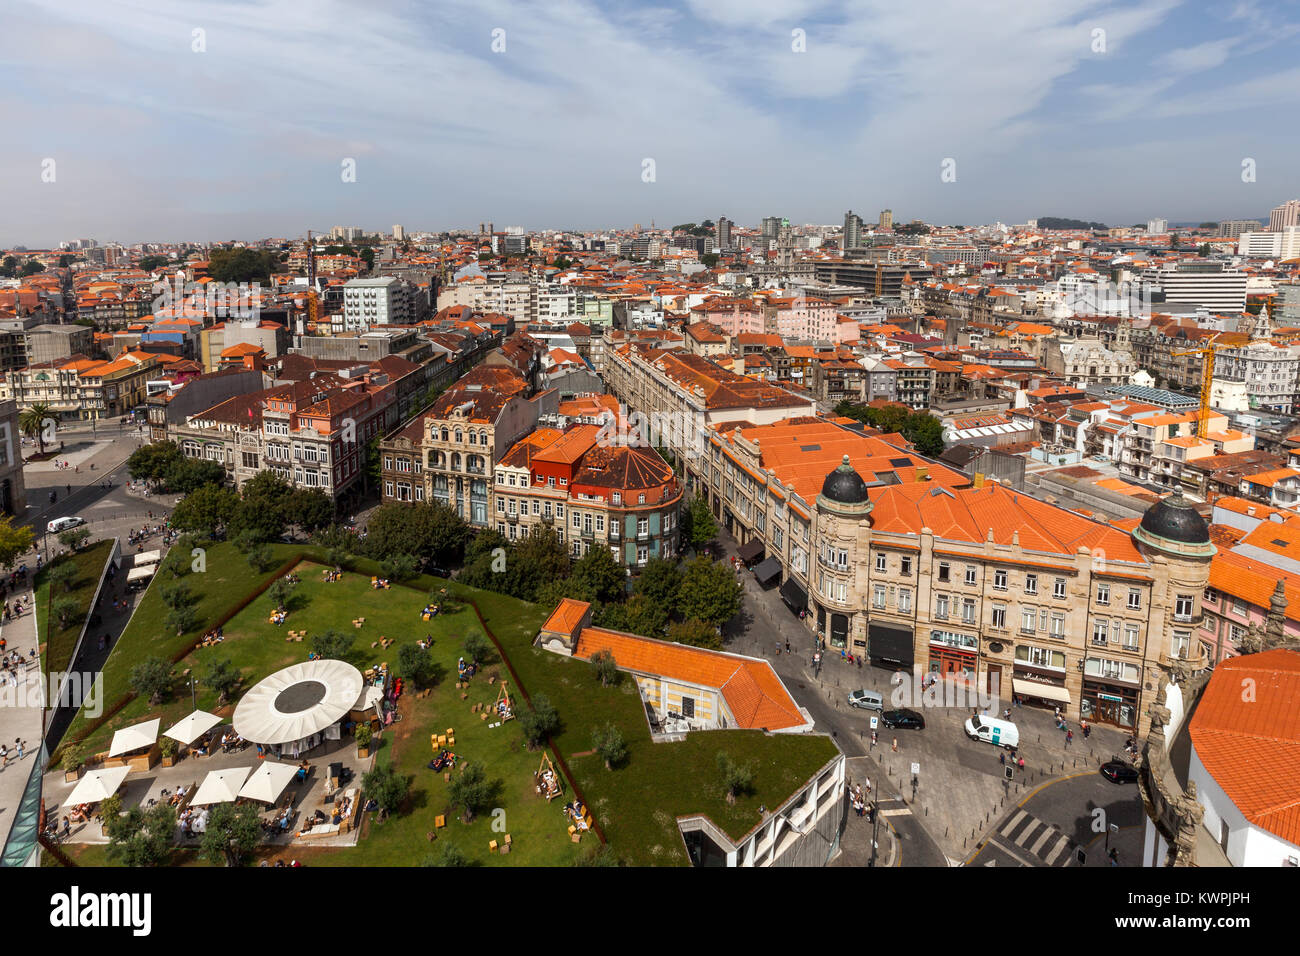 View of Porto, Portugal from the top of the Clerics Tower - Stock Image